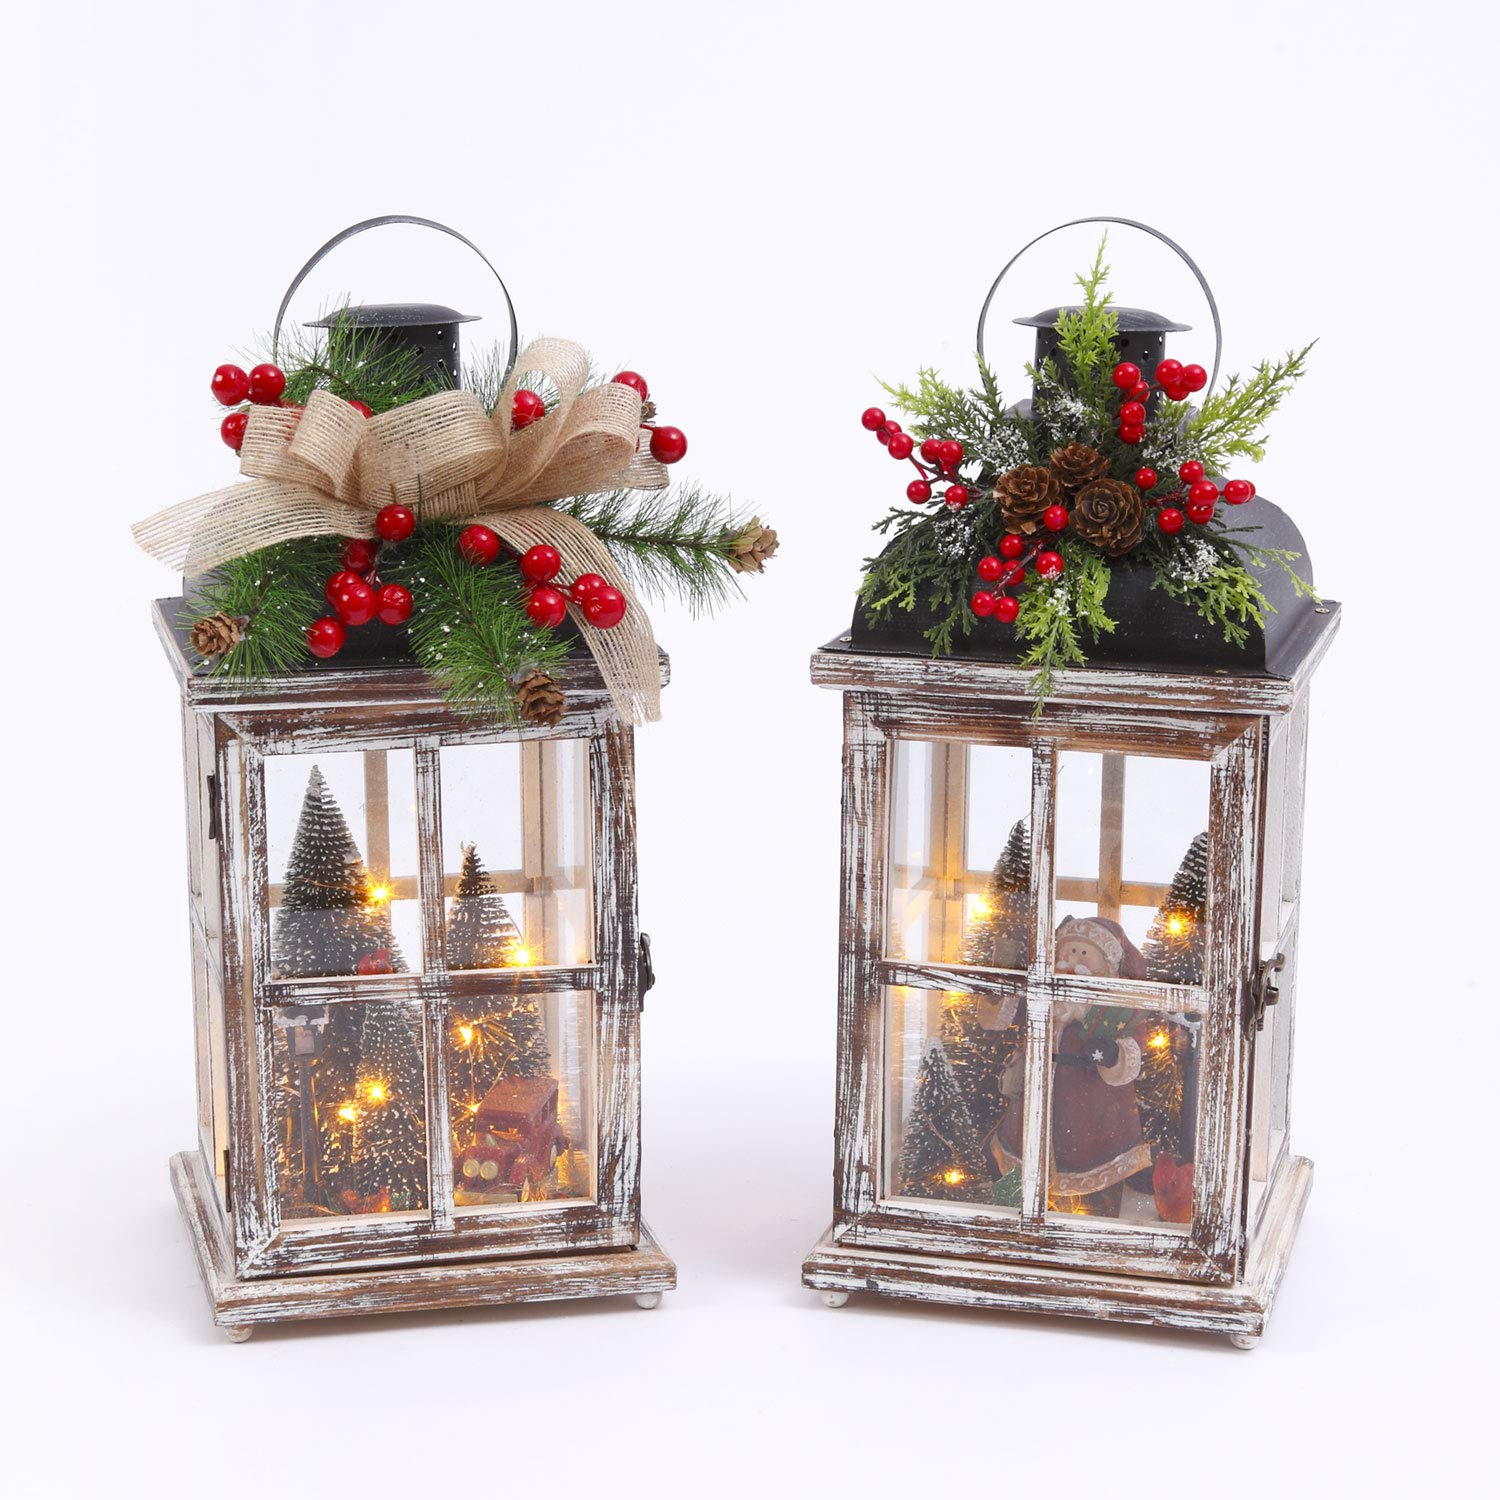 Gerson Battery Operated Lighted Wood Lantern with Christmas Scene (Set of 2) Santa and Red Truck with Christmas Trees